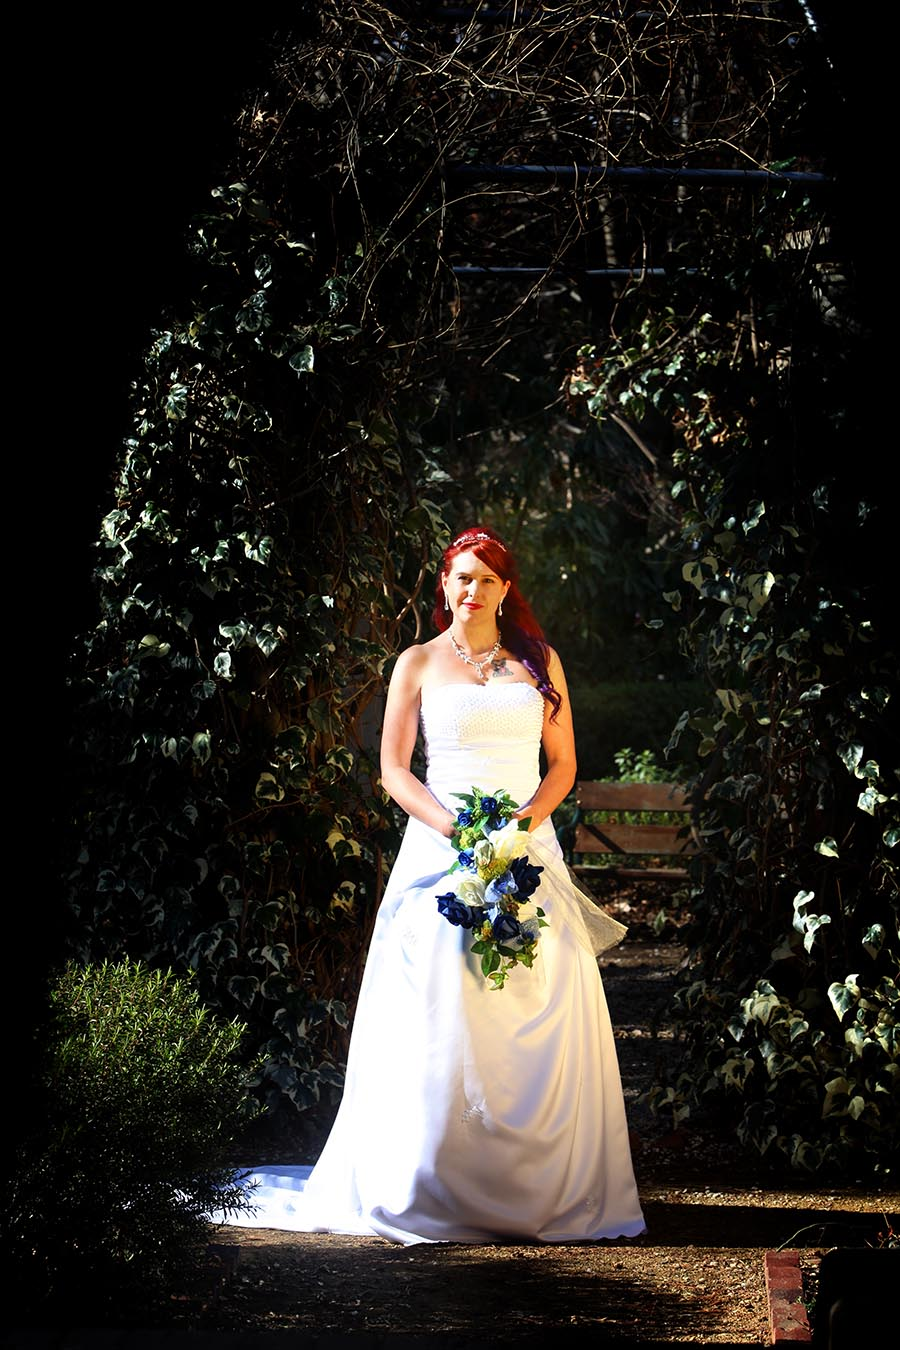 stunning bride with reflected light standing in garden arbour